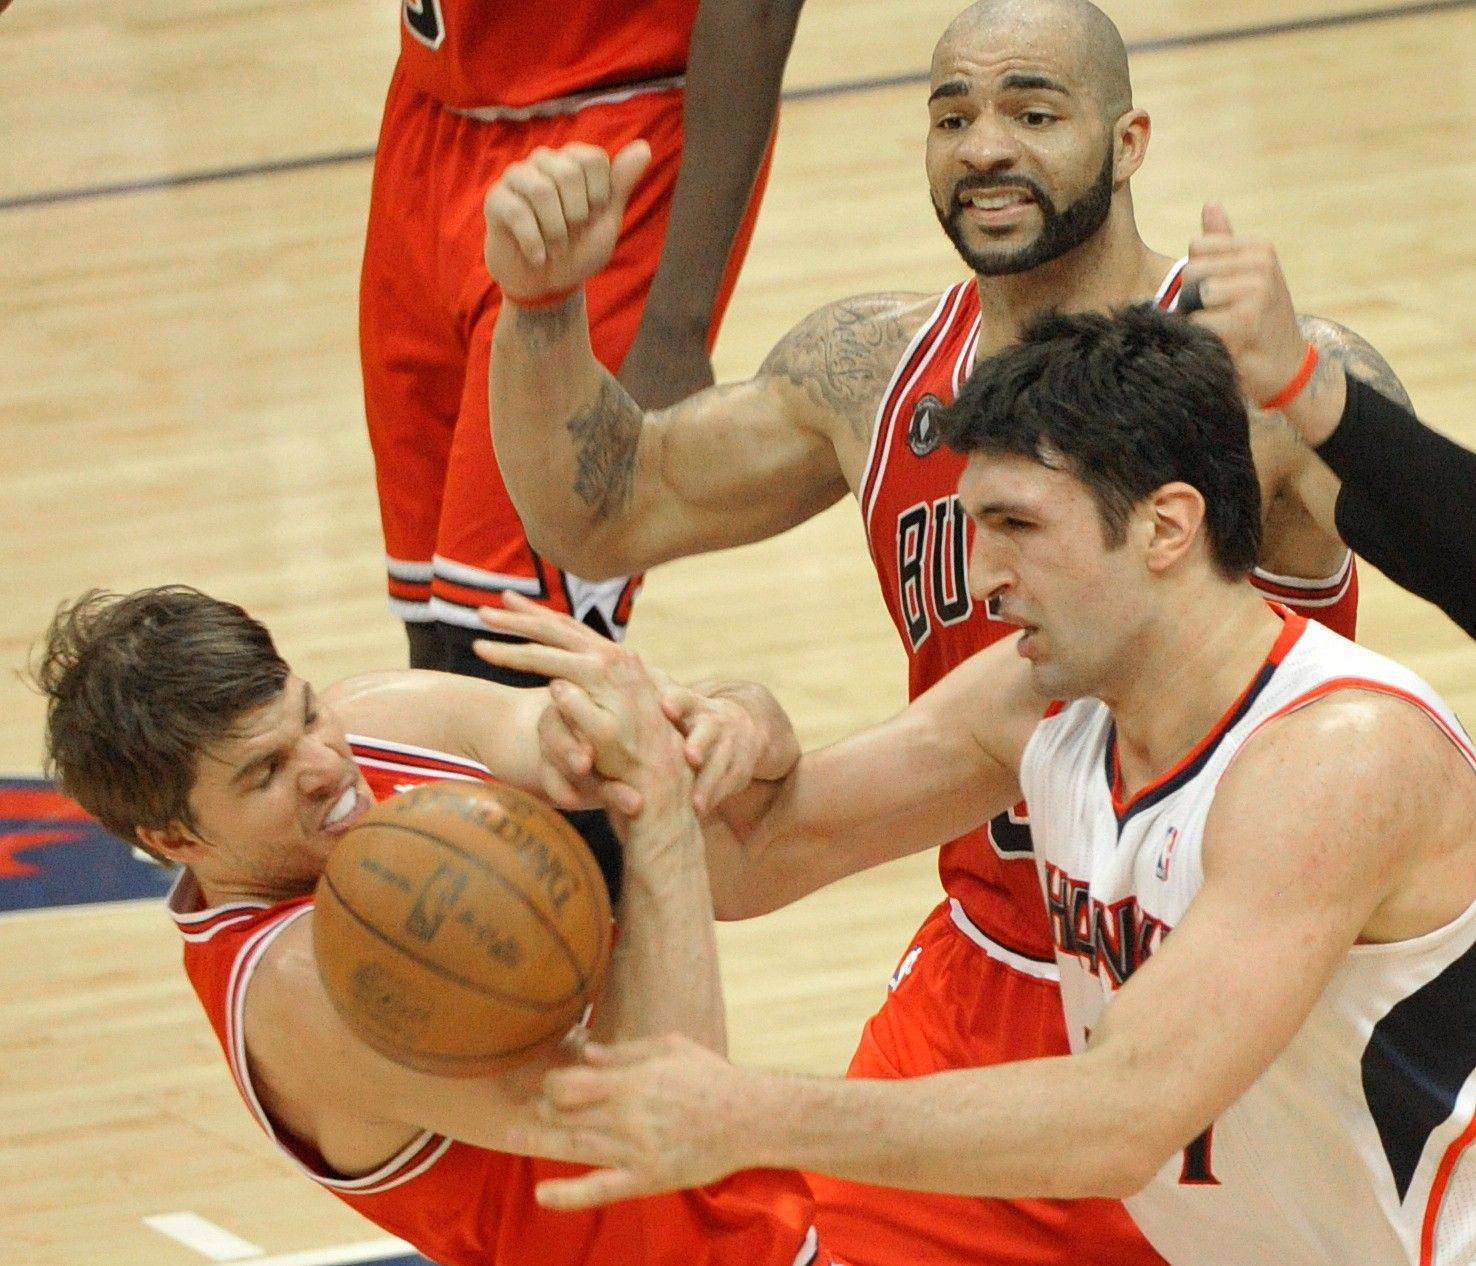 Chicago Bulls guard Kyle Korver, left, vies for a loose ball with Atlanta Hawks center Zaza Pachulia as Bulls forward Carlos Boozer looks on in the second quarter Thursday.